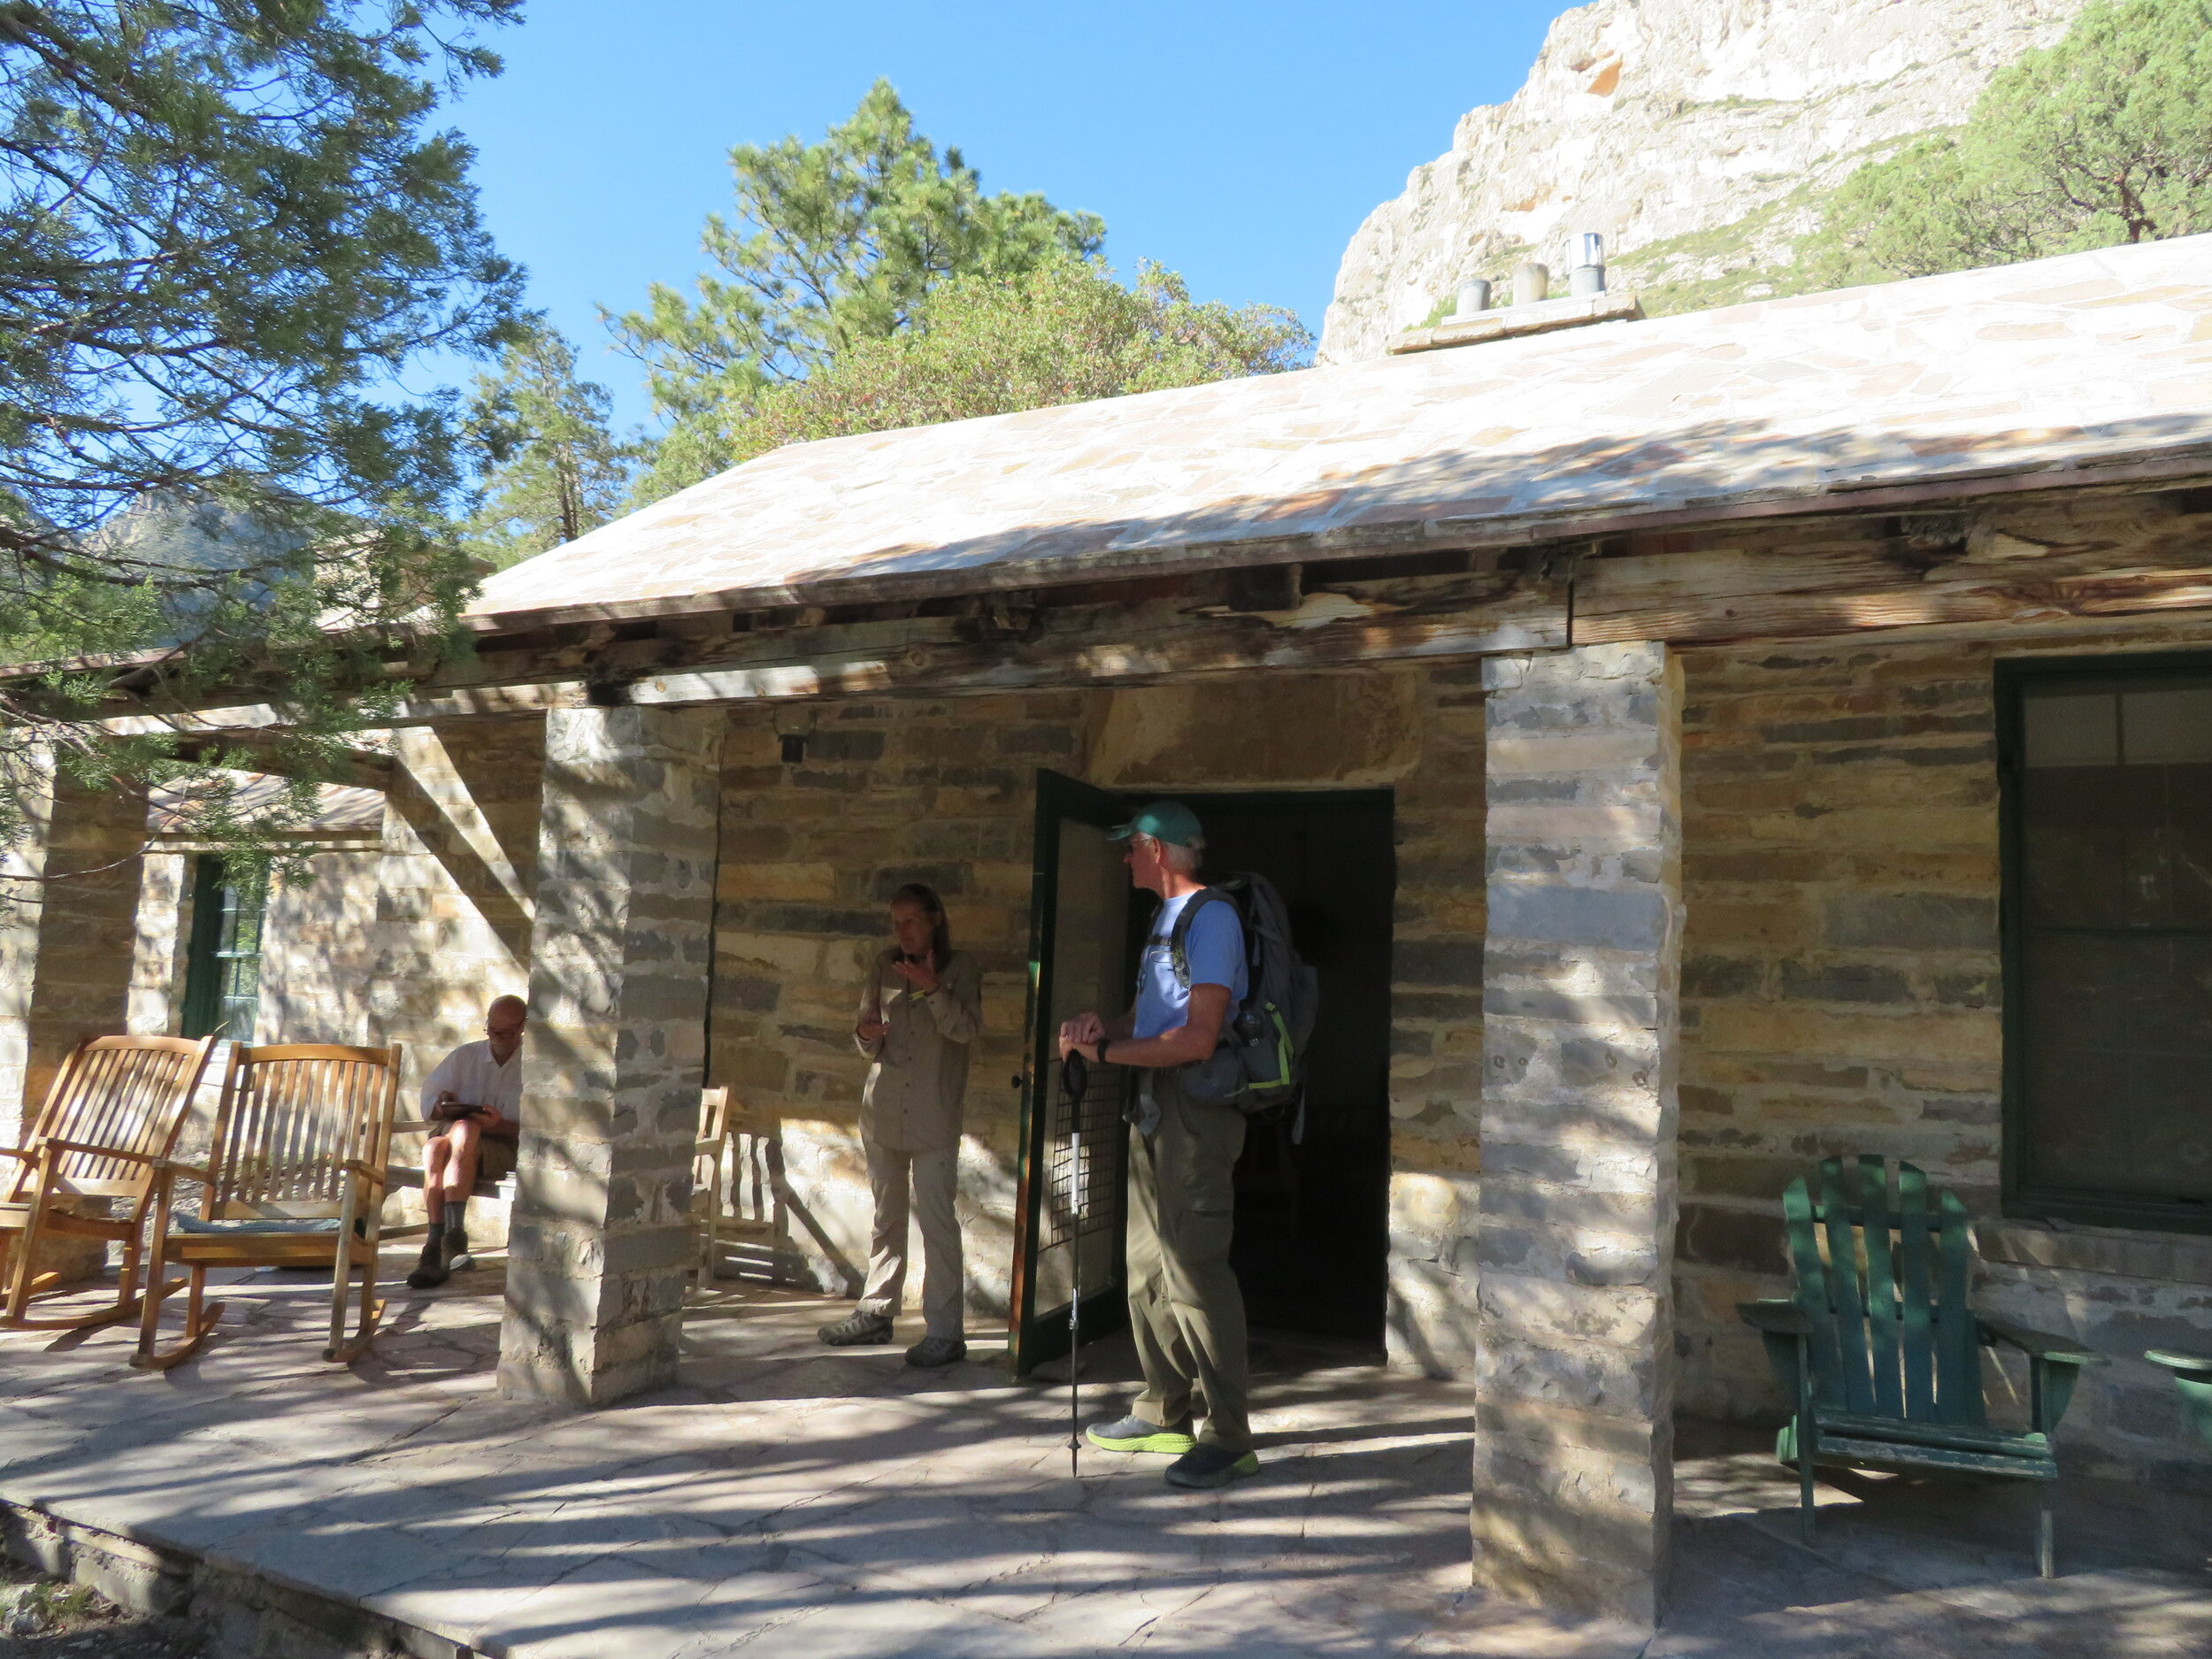 The Pratt Cabin is now an open exhibit for park visitors.